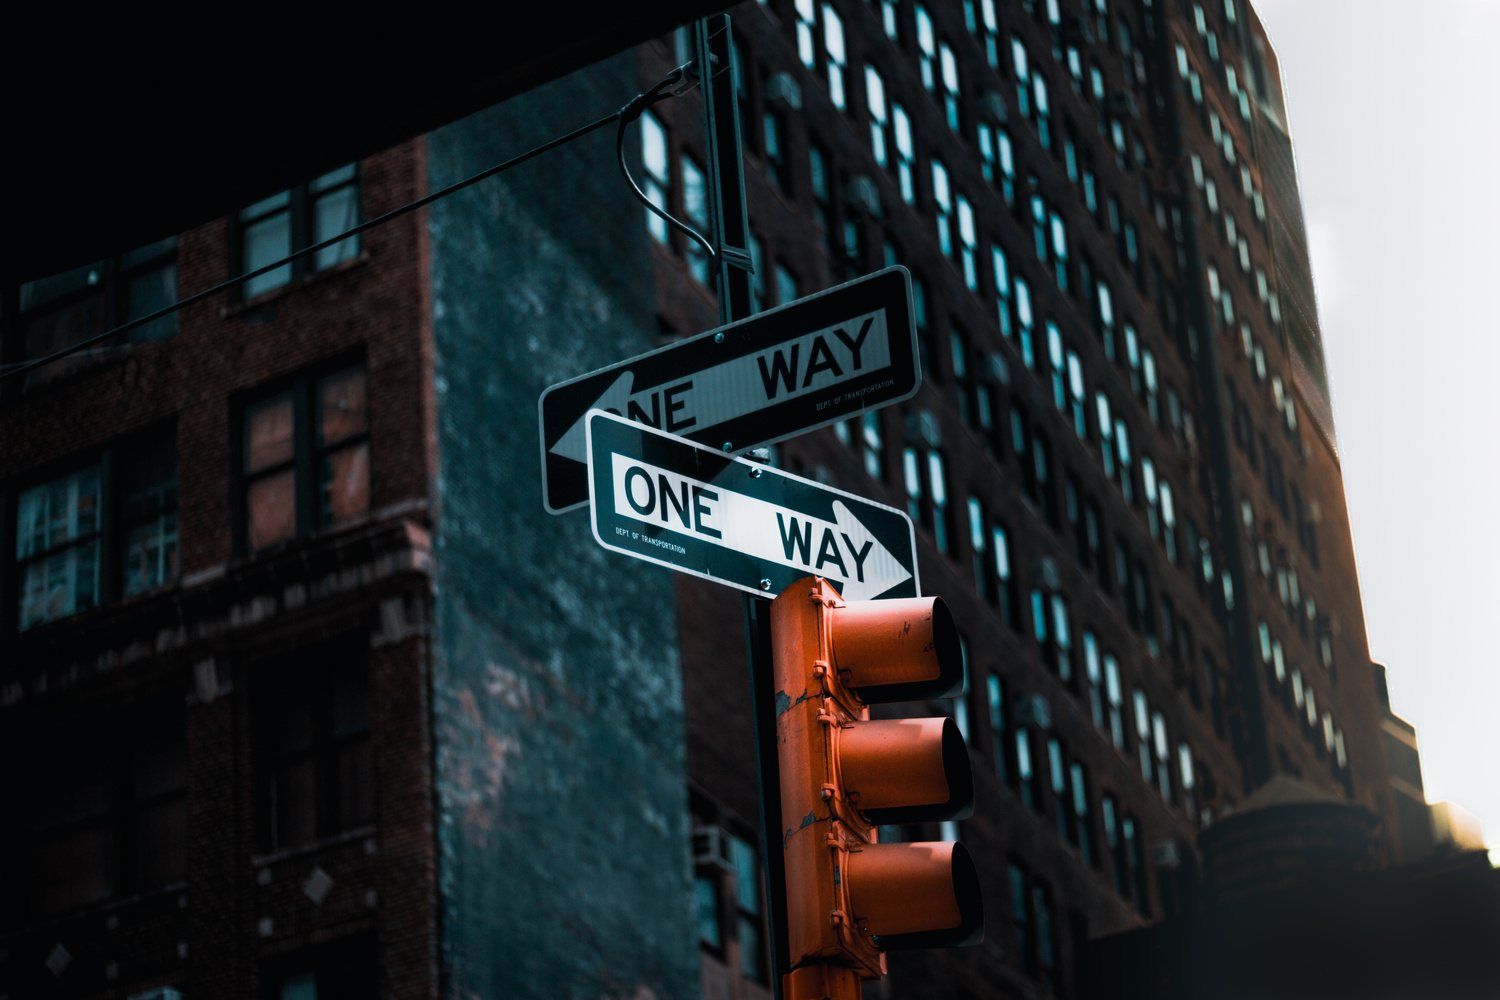 One way or the Other by Kush Shah